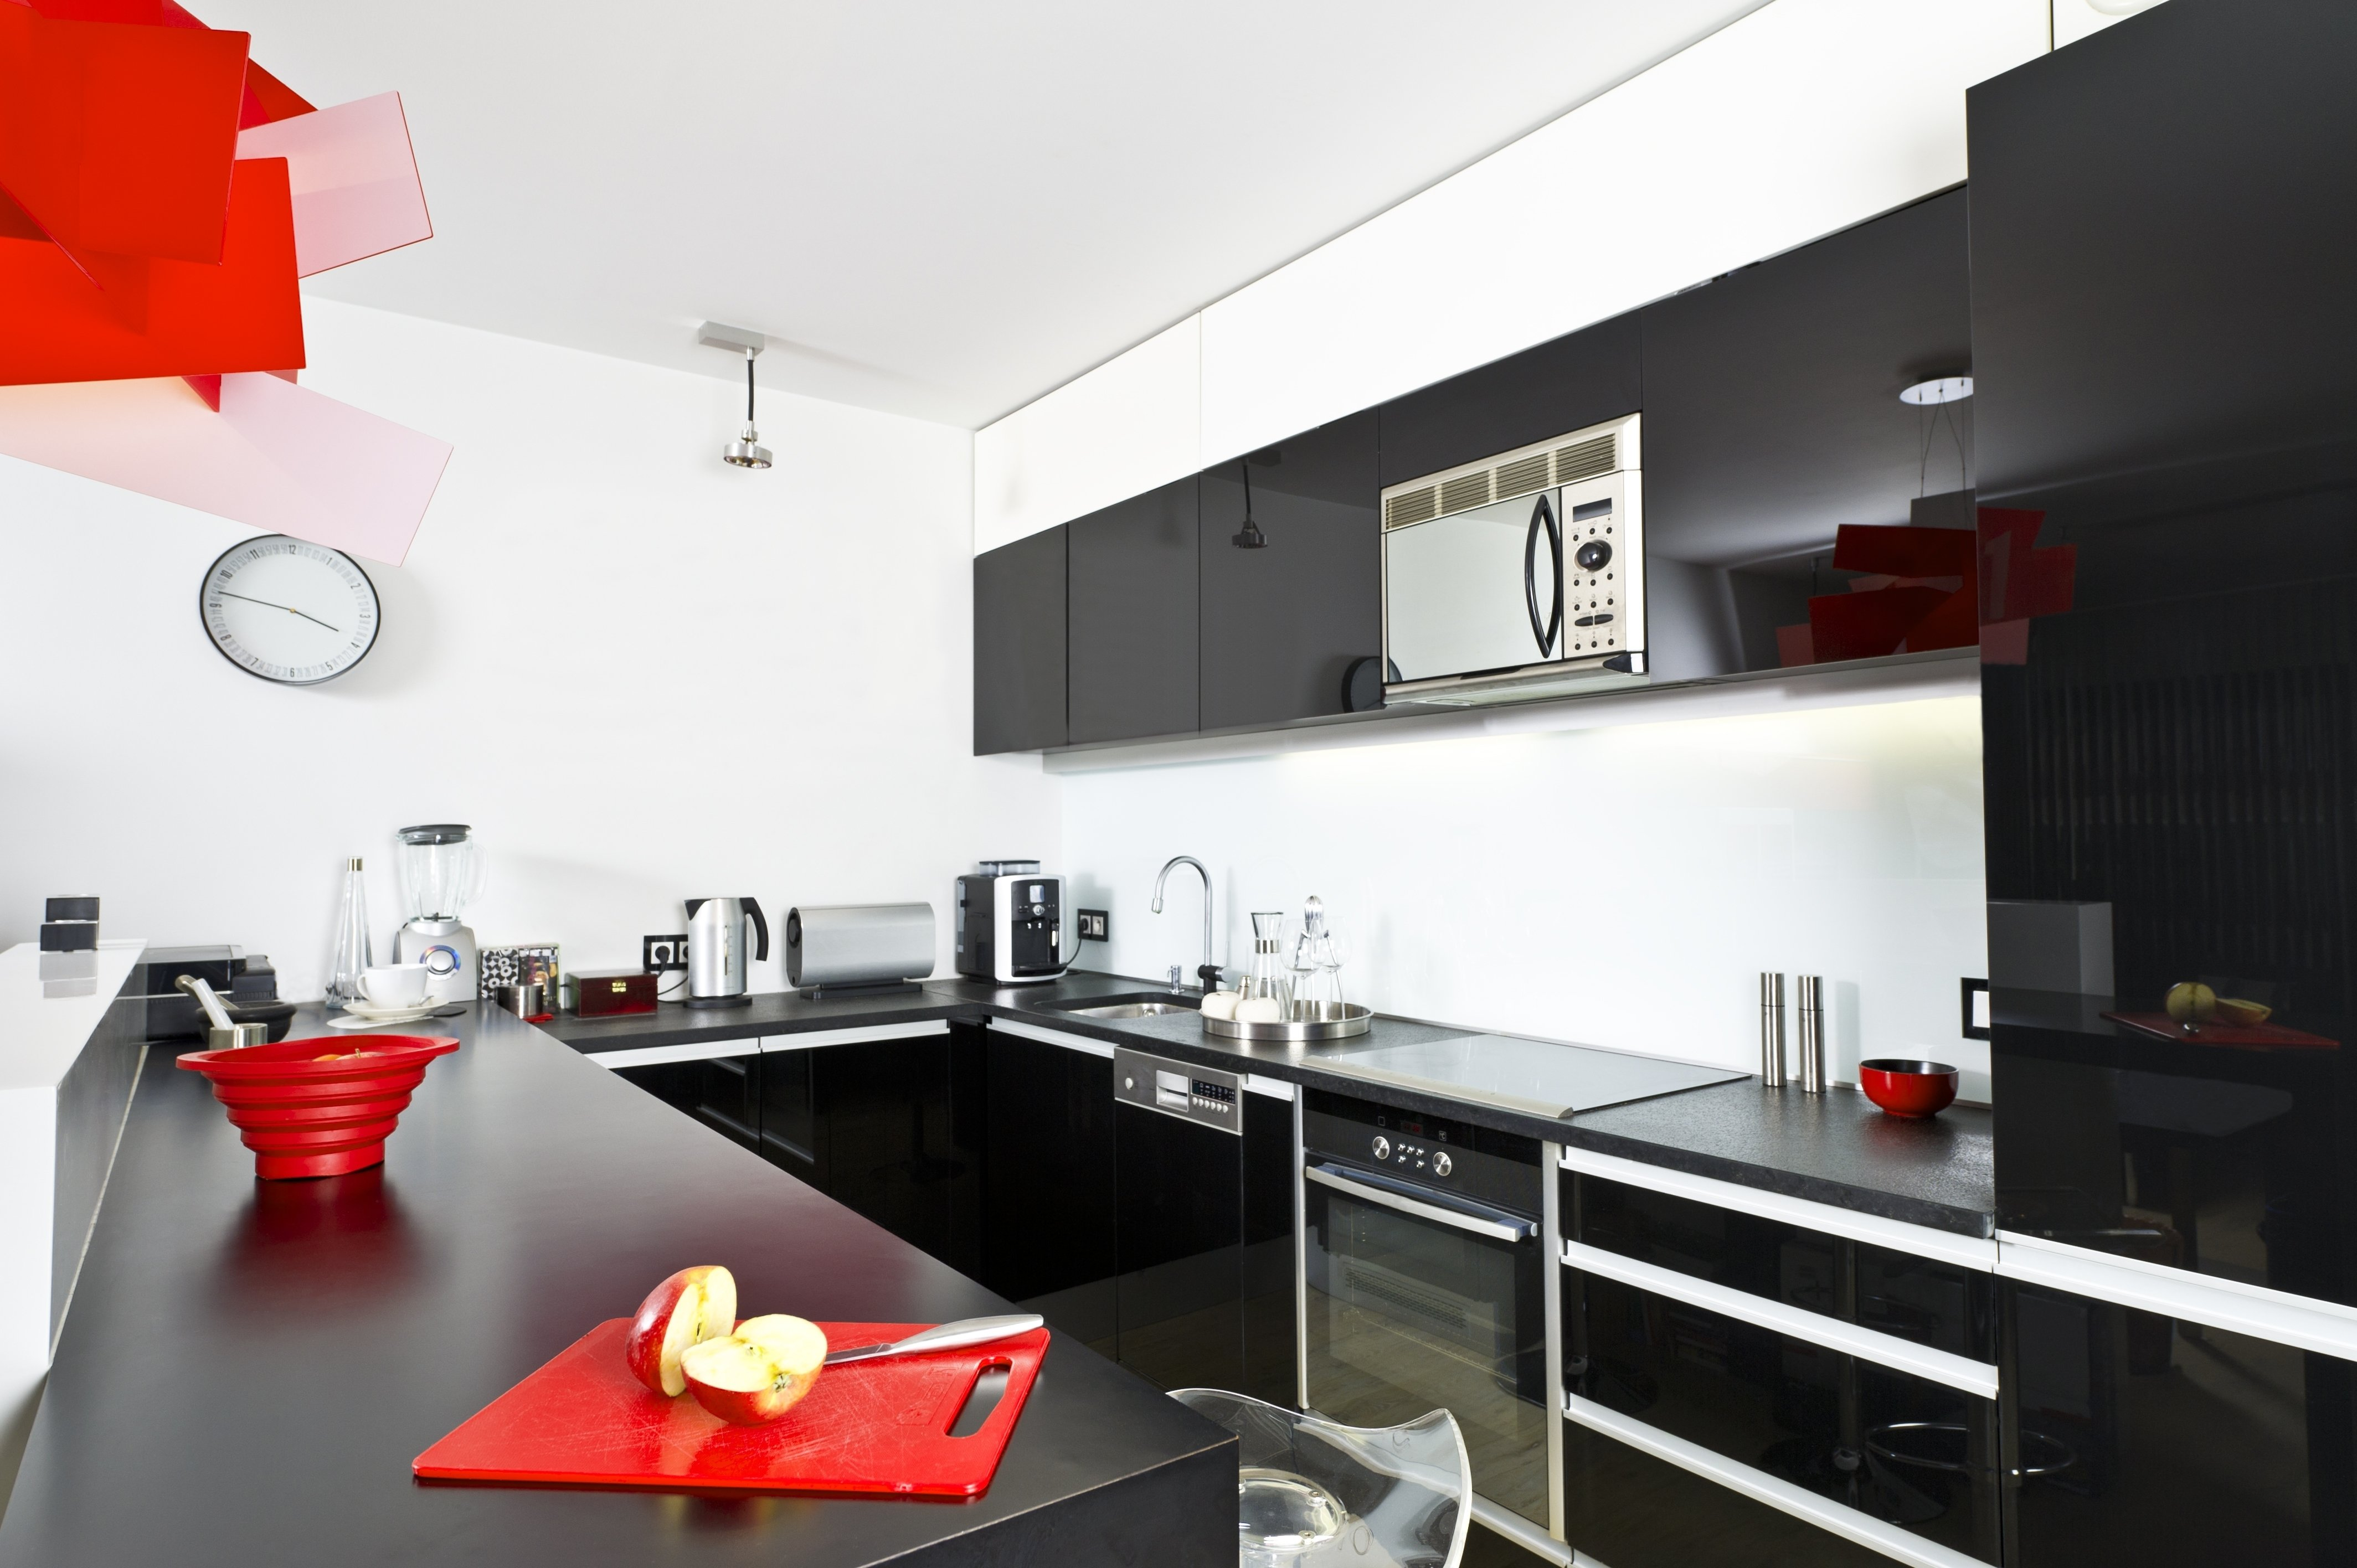 10 Attractive Red And Black Kitchen Ideas red and black kitchen ideas 2017 modern house design 2021